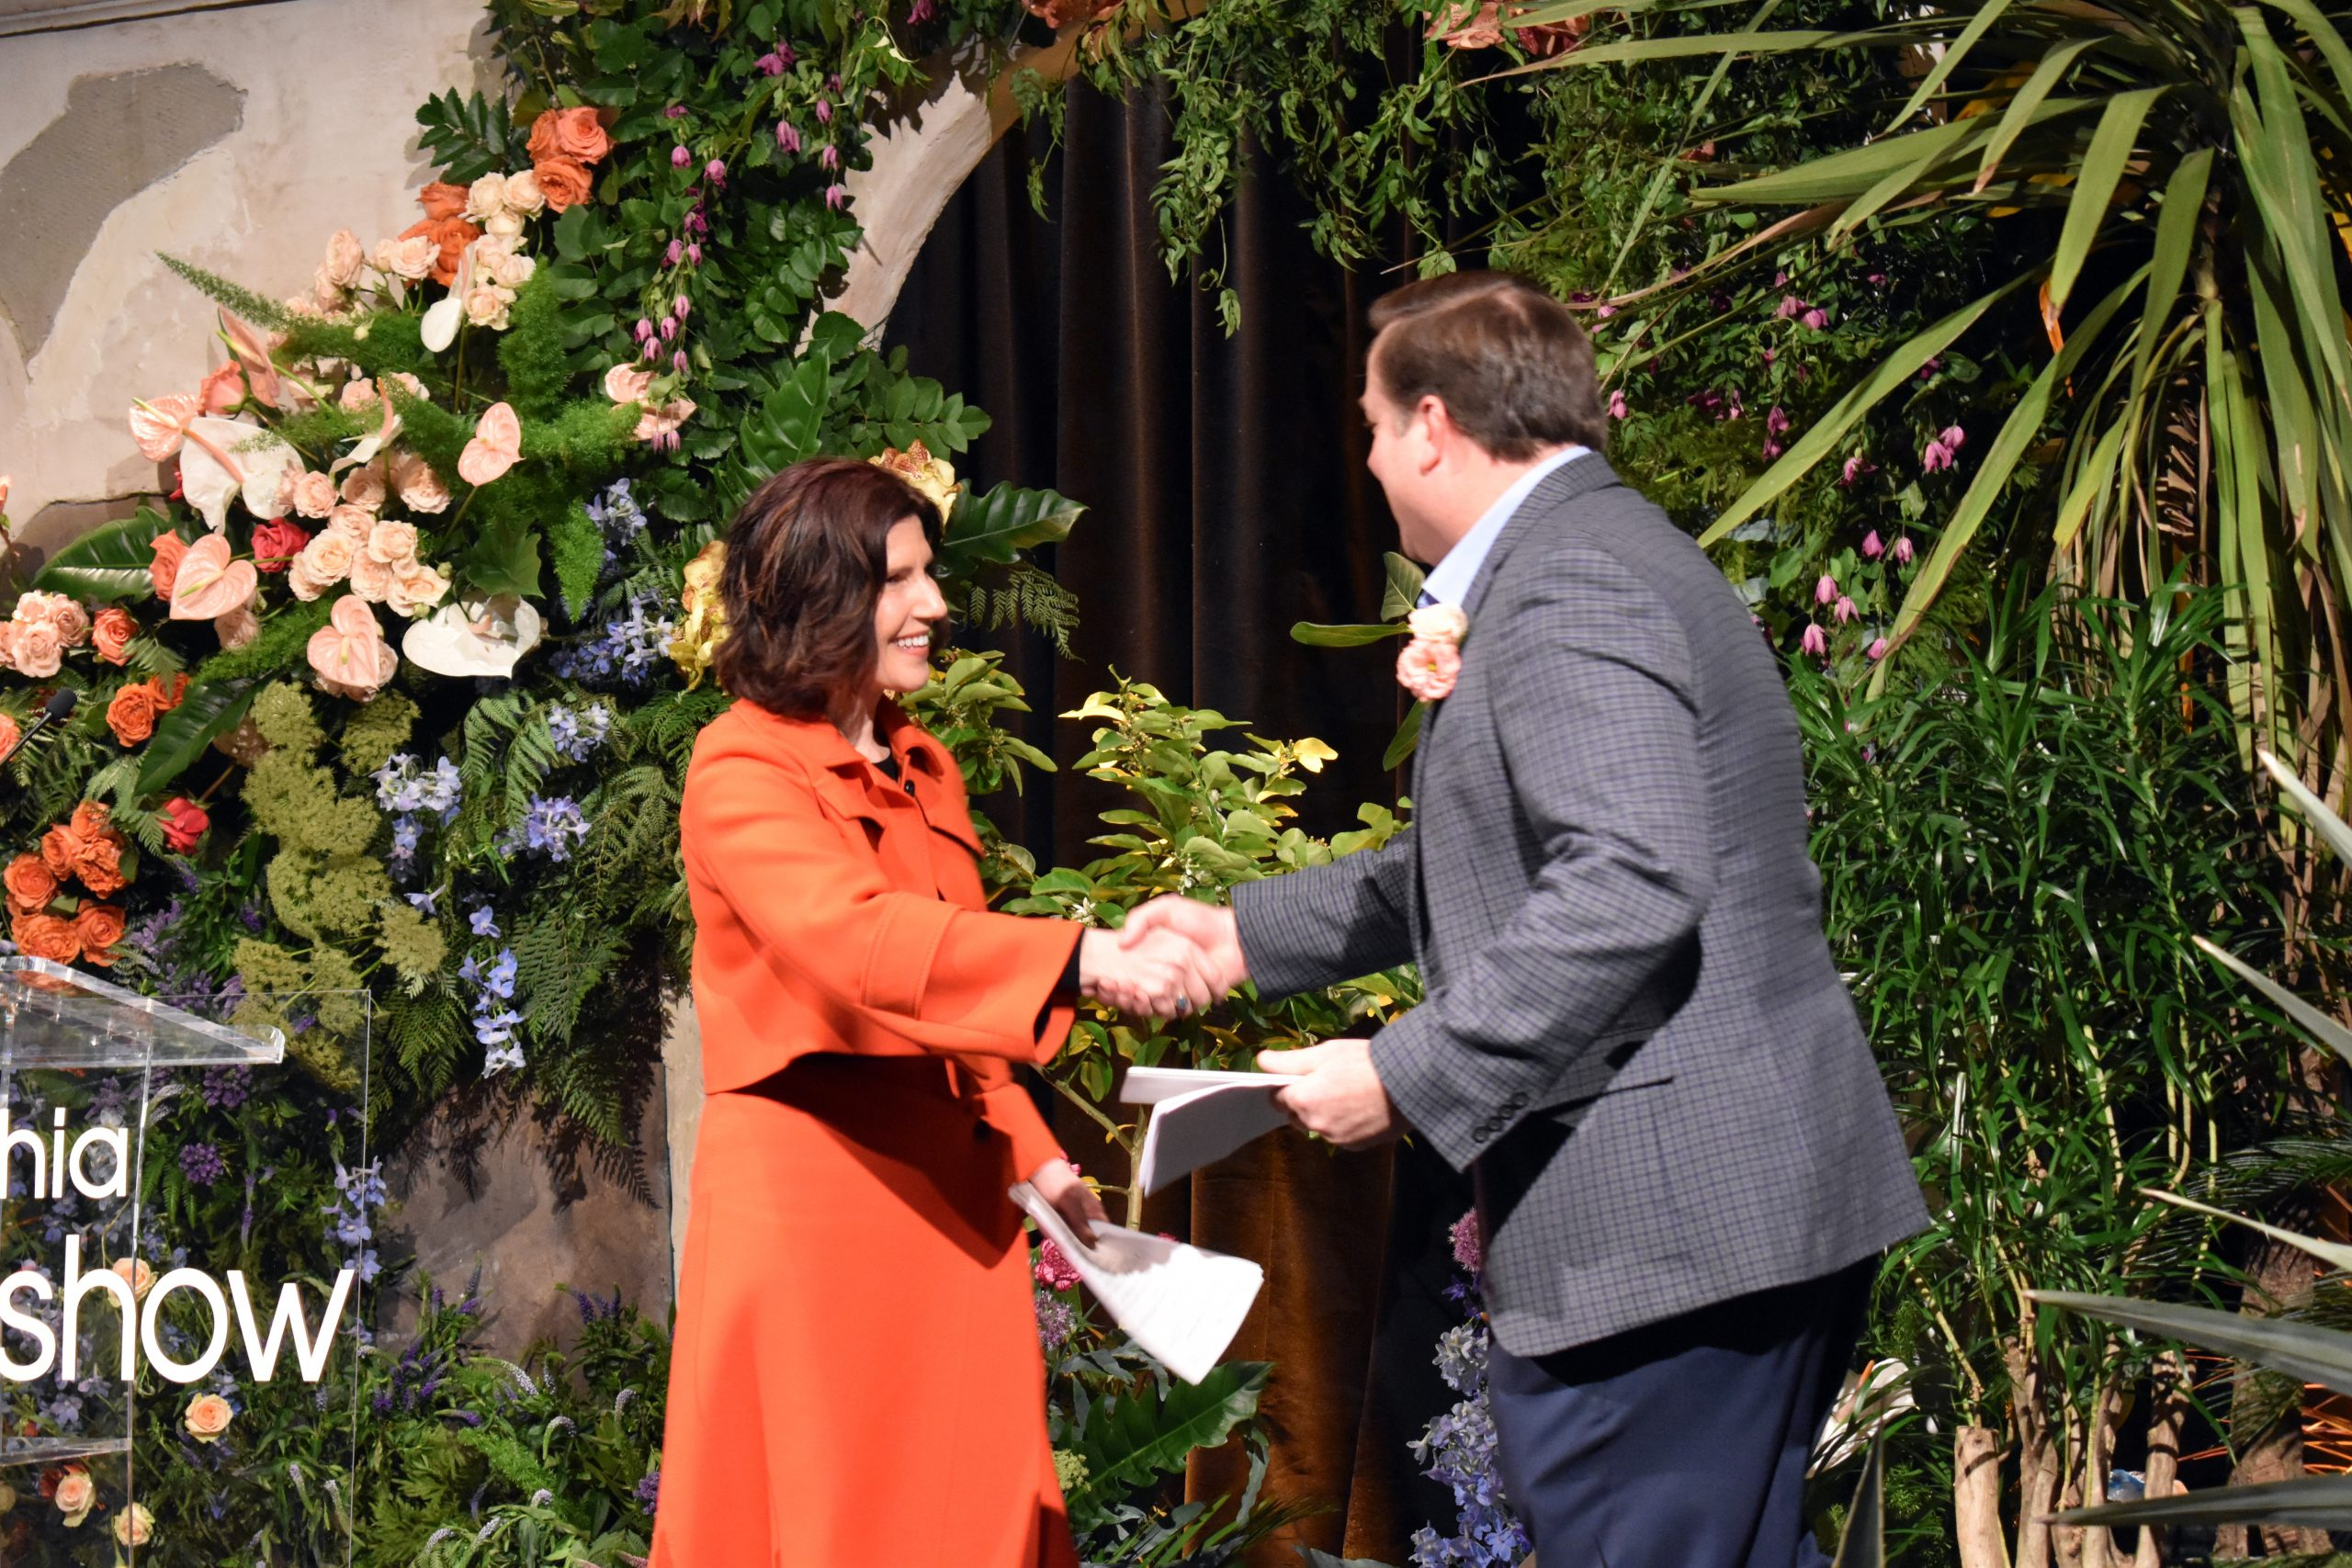 Shows Daphne Klausner on stage shaking hands with representative from the Philadelphia Horticultural Society at press event